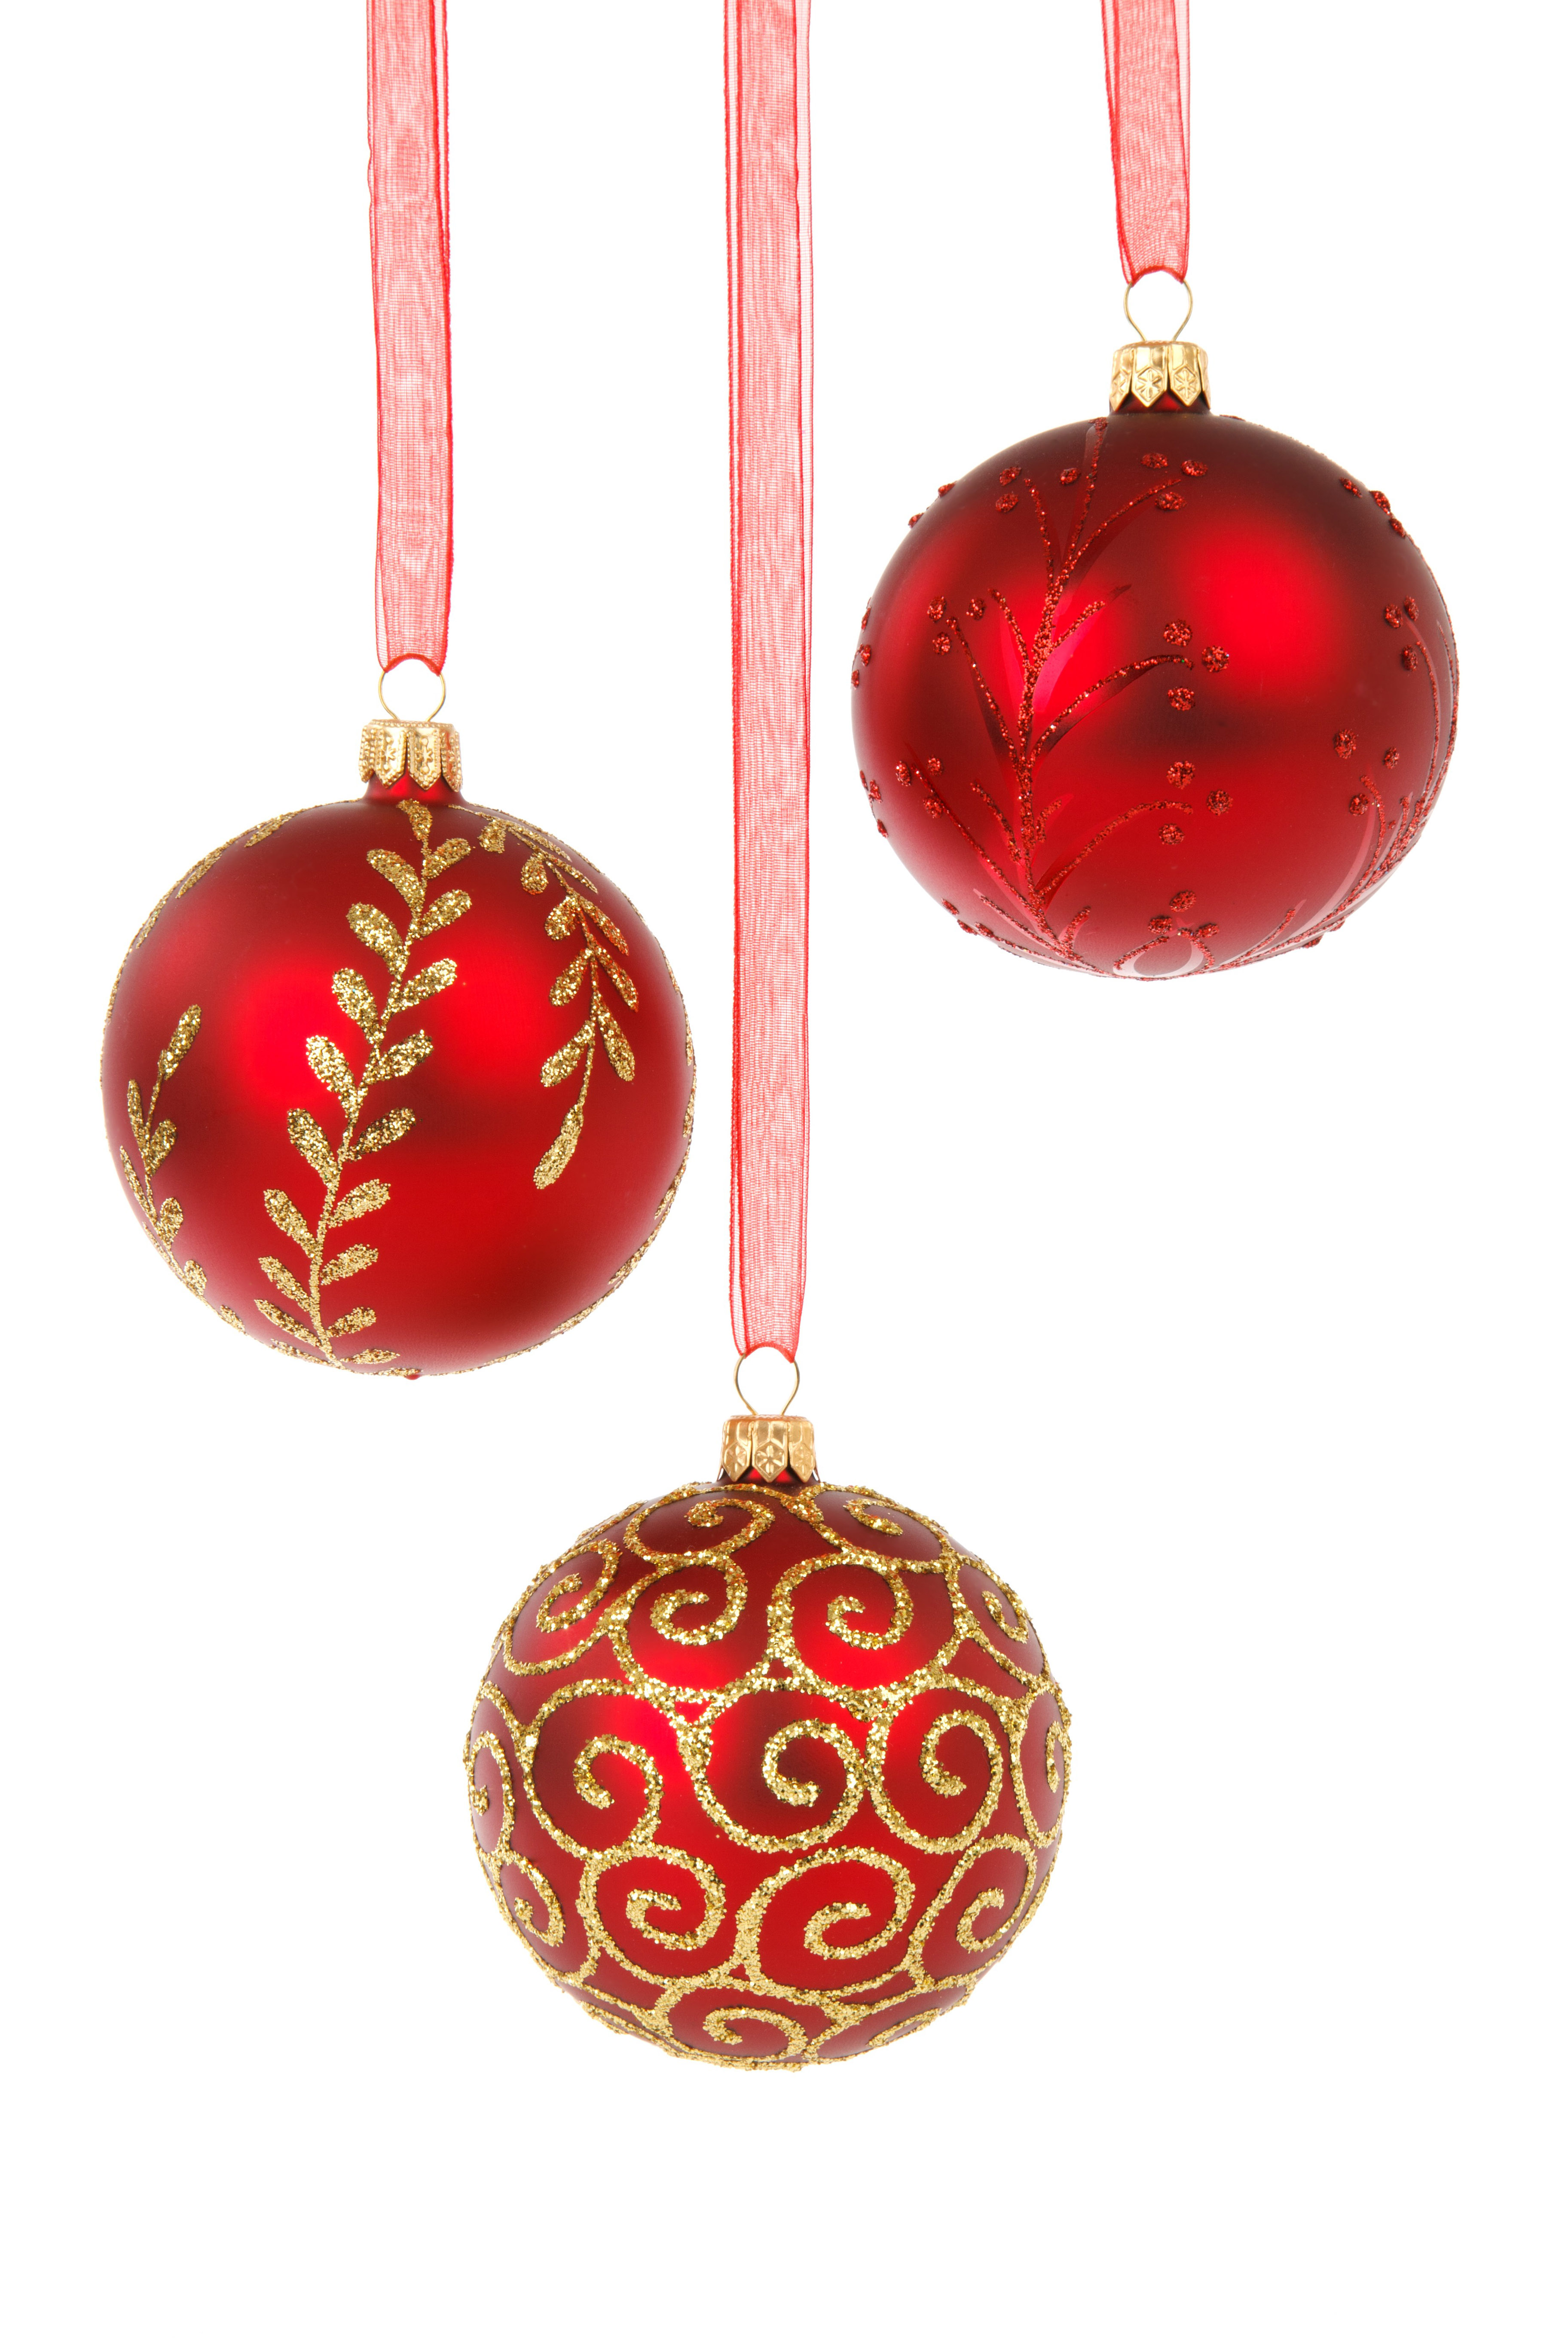 15 Assorted Christmas Ornaments On A White Background Www Christmas ...